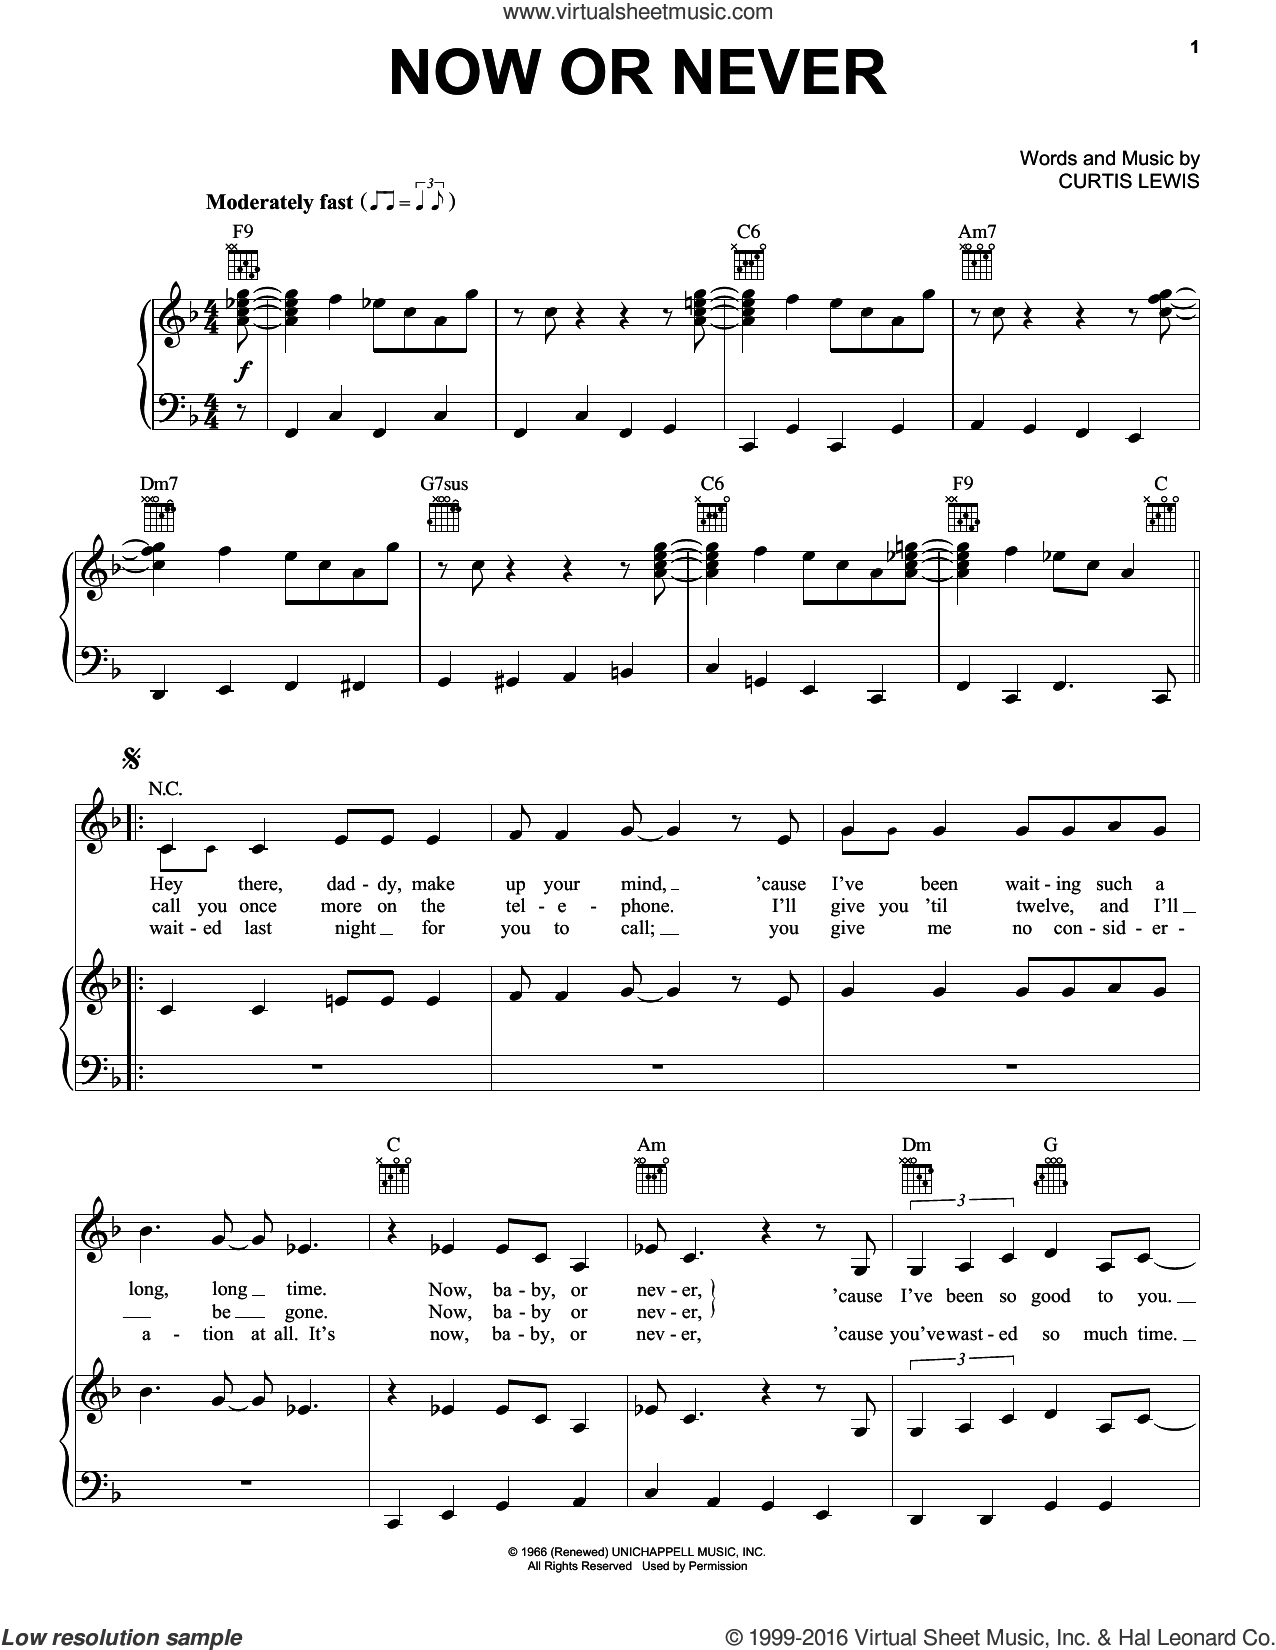 Now Or Never sheet music for voice, piano or guitar by Billie Holiday and Curtis Lewis, intermediate skill level